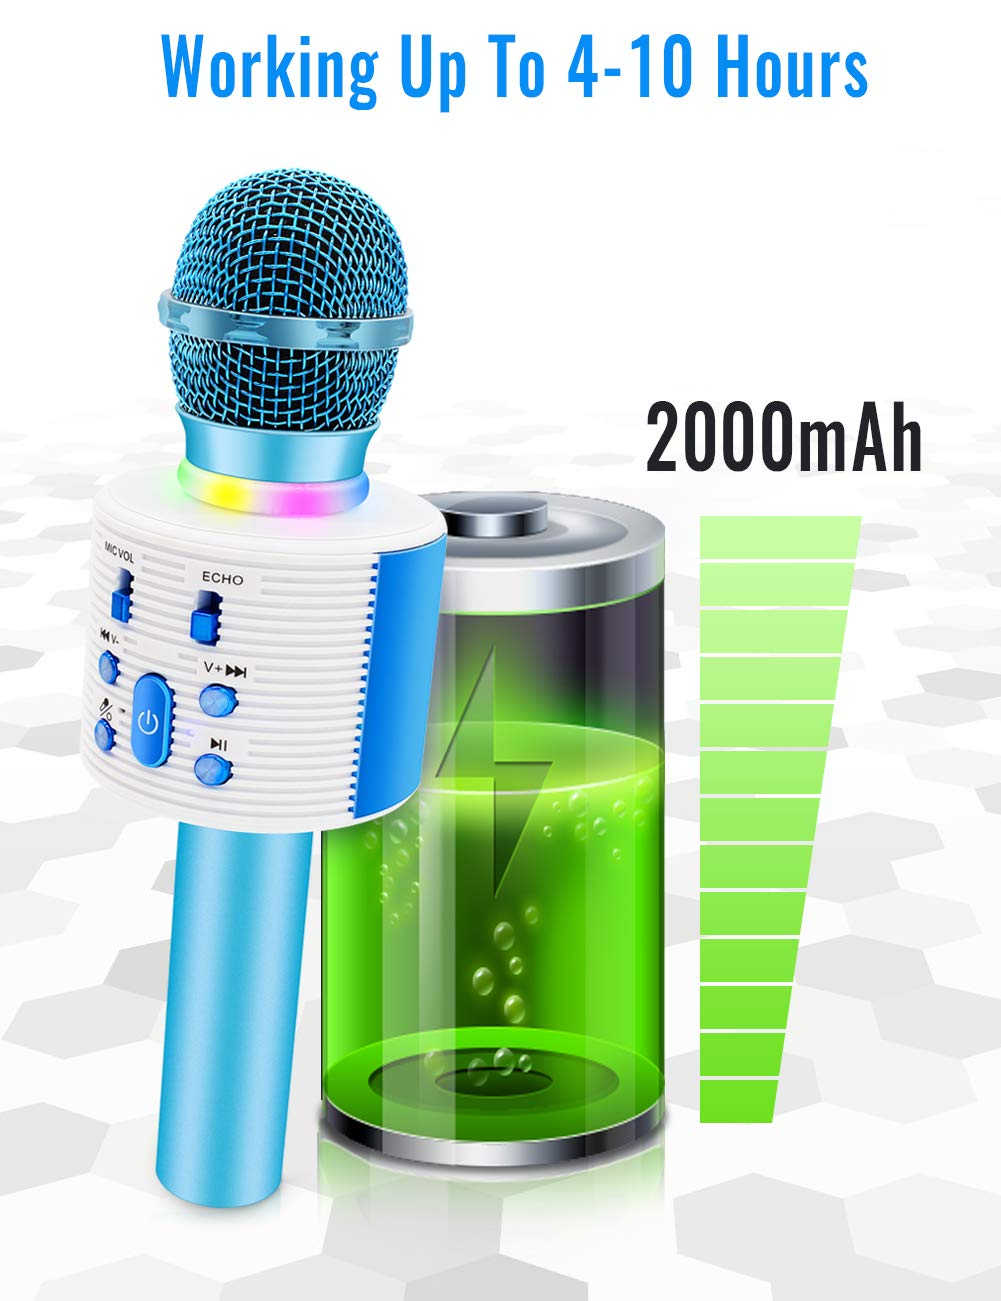 Wireless Karaoke Microphone with Speaker Pro, 3-in-1 Portable Handheld Karaoke Mic Home Party Birthday Gifts for Kids Speaker Machine for Android/ PC /phone(Blue) by weird tails (Image #6)